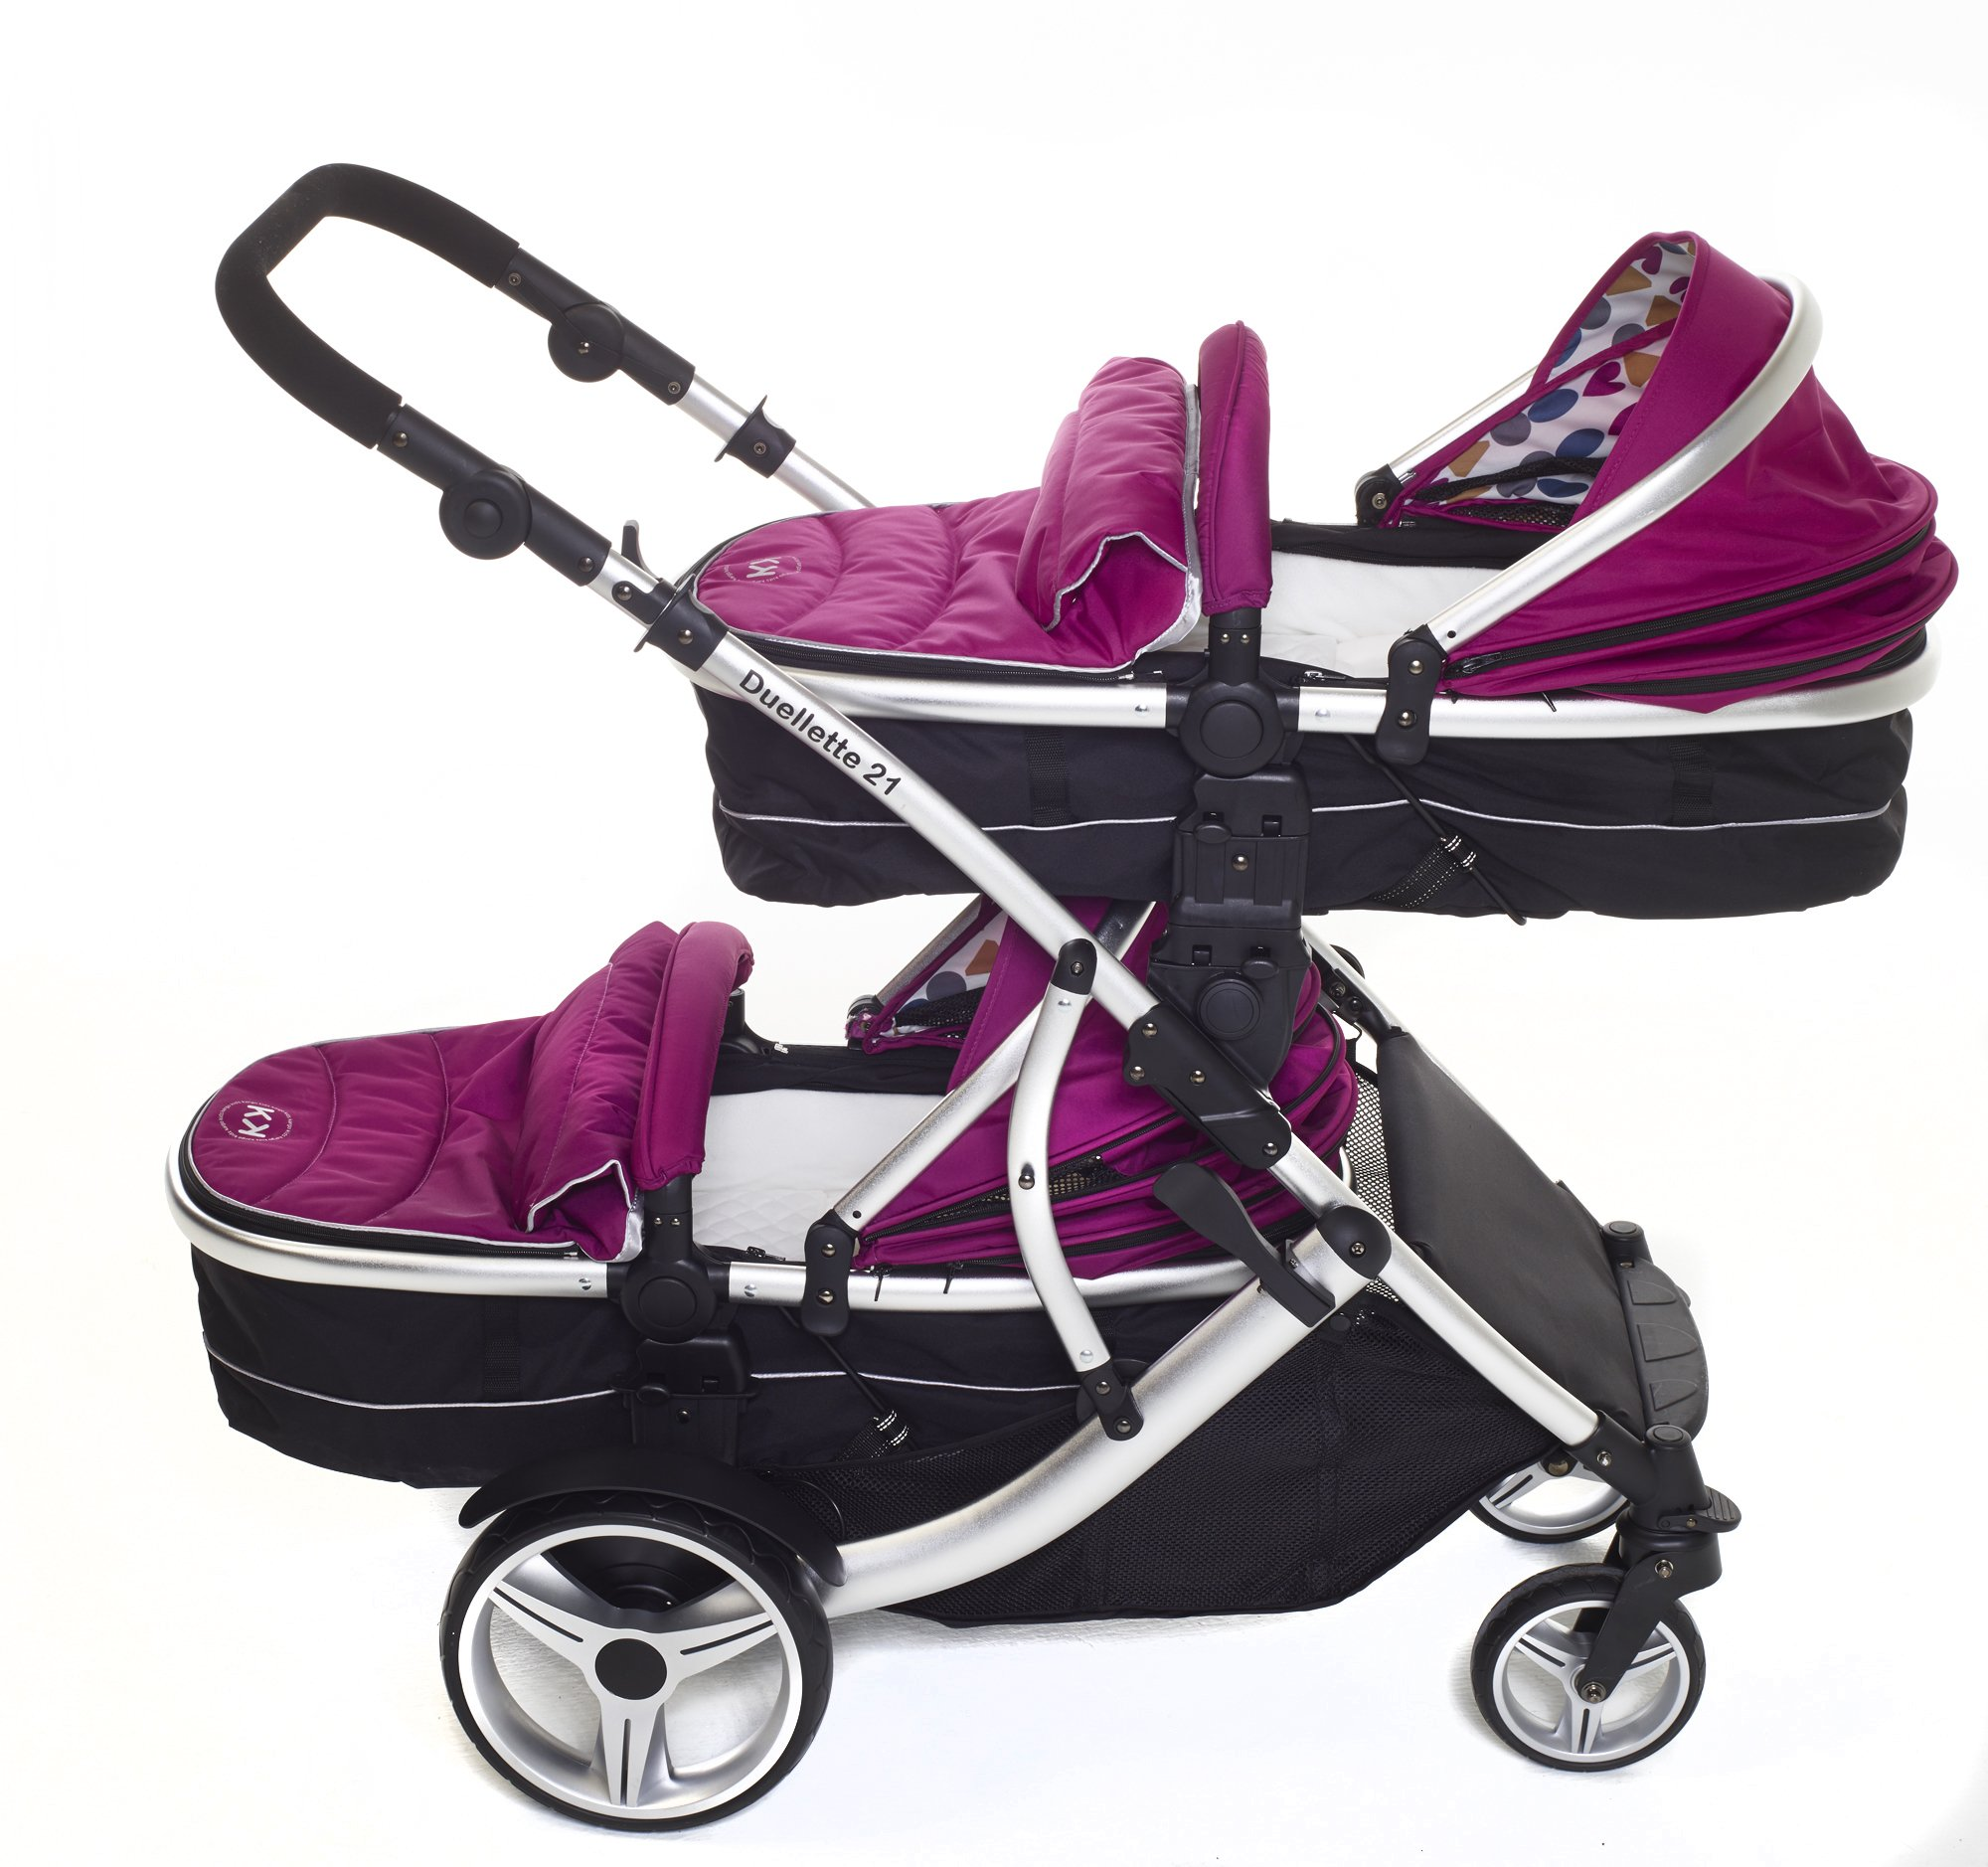 Kids Kargo Double Twin Tandem Pushchair. Duellette Combi Suitable from birth, Carrycot converts to toddler seat unit. Stroller by Kids Kargo (Dooglebug Raspberry)  Versatile. Suitable for Newborn Twins Compatible with car seats; Kidz Kargo, Britax Baby safe or Maxi Cosi adaptors. carrycots have mattress and soft lining, which zip off. Remove lining and lid, when baby grows out of carrycot mode, converts to seat unit 3